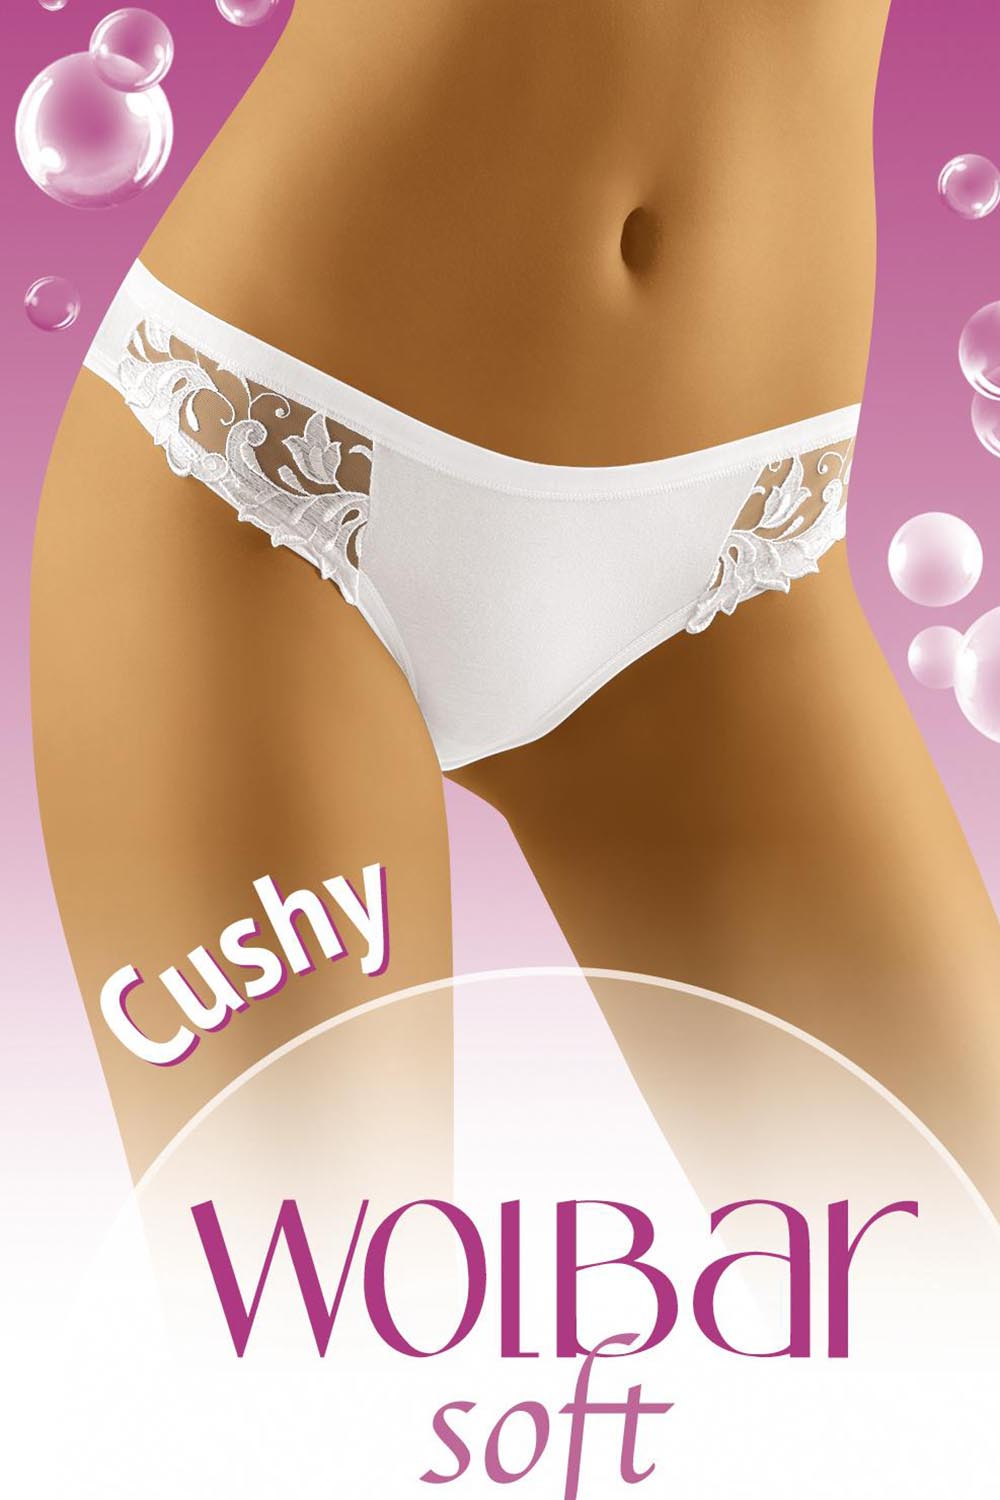 Figi Wol-Bar Soft Cushy - zoom